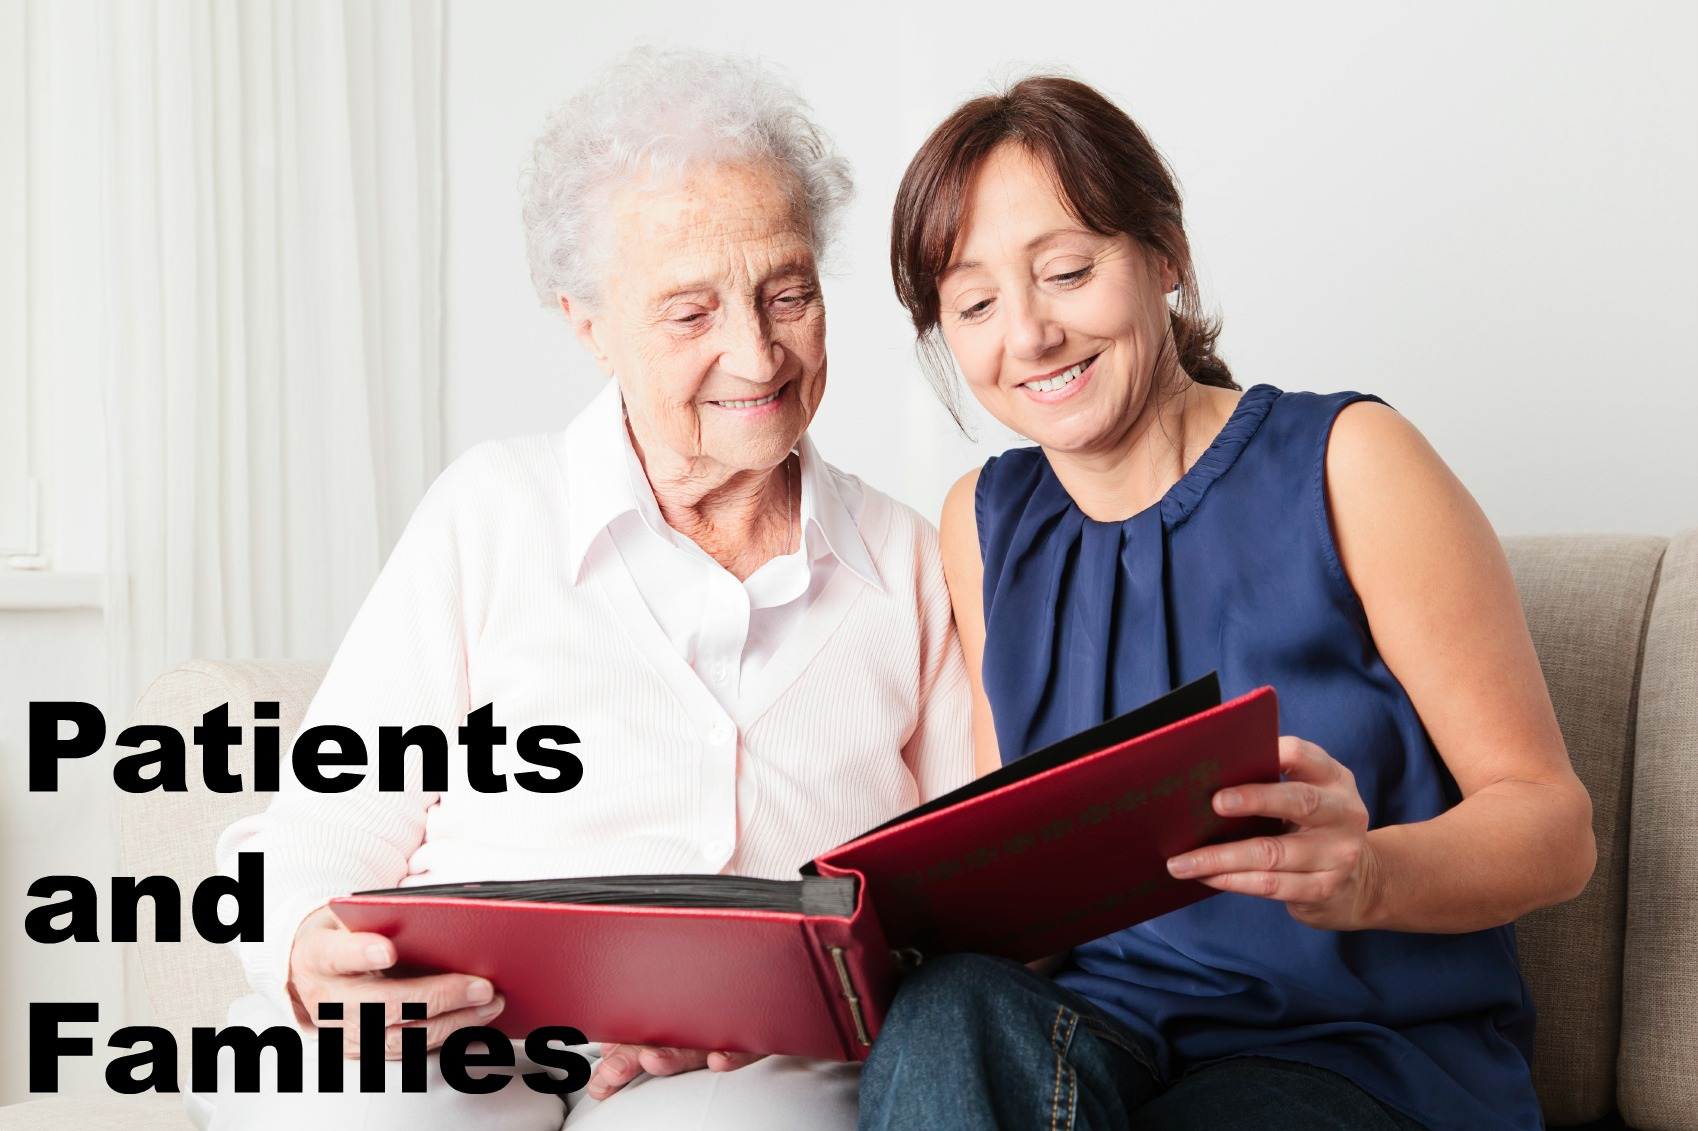 Patients_and_Families_2.jpg